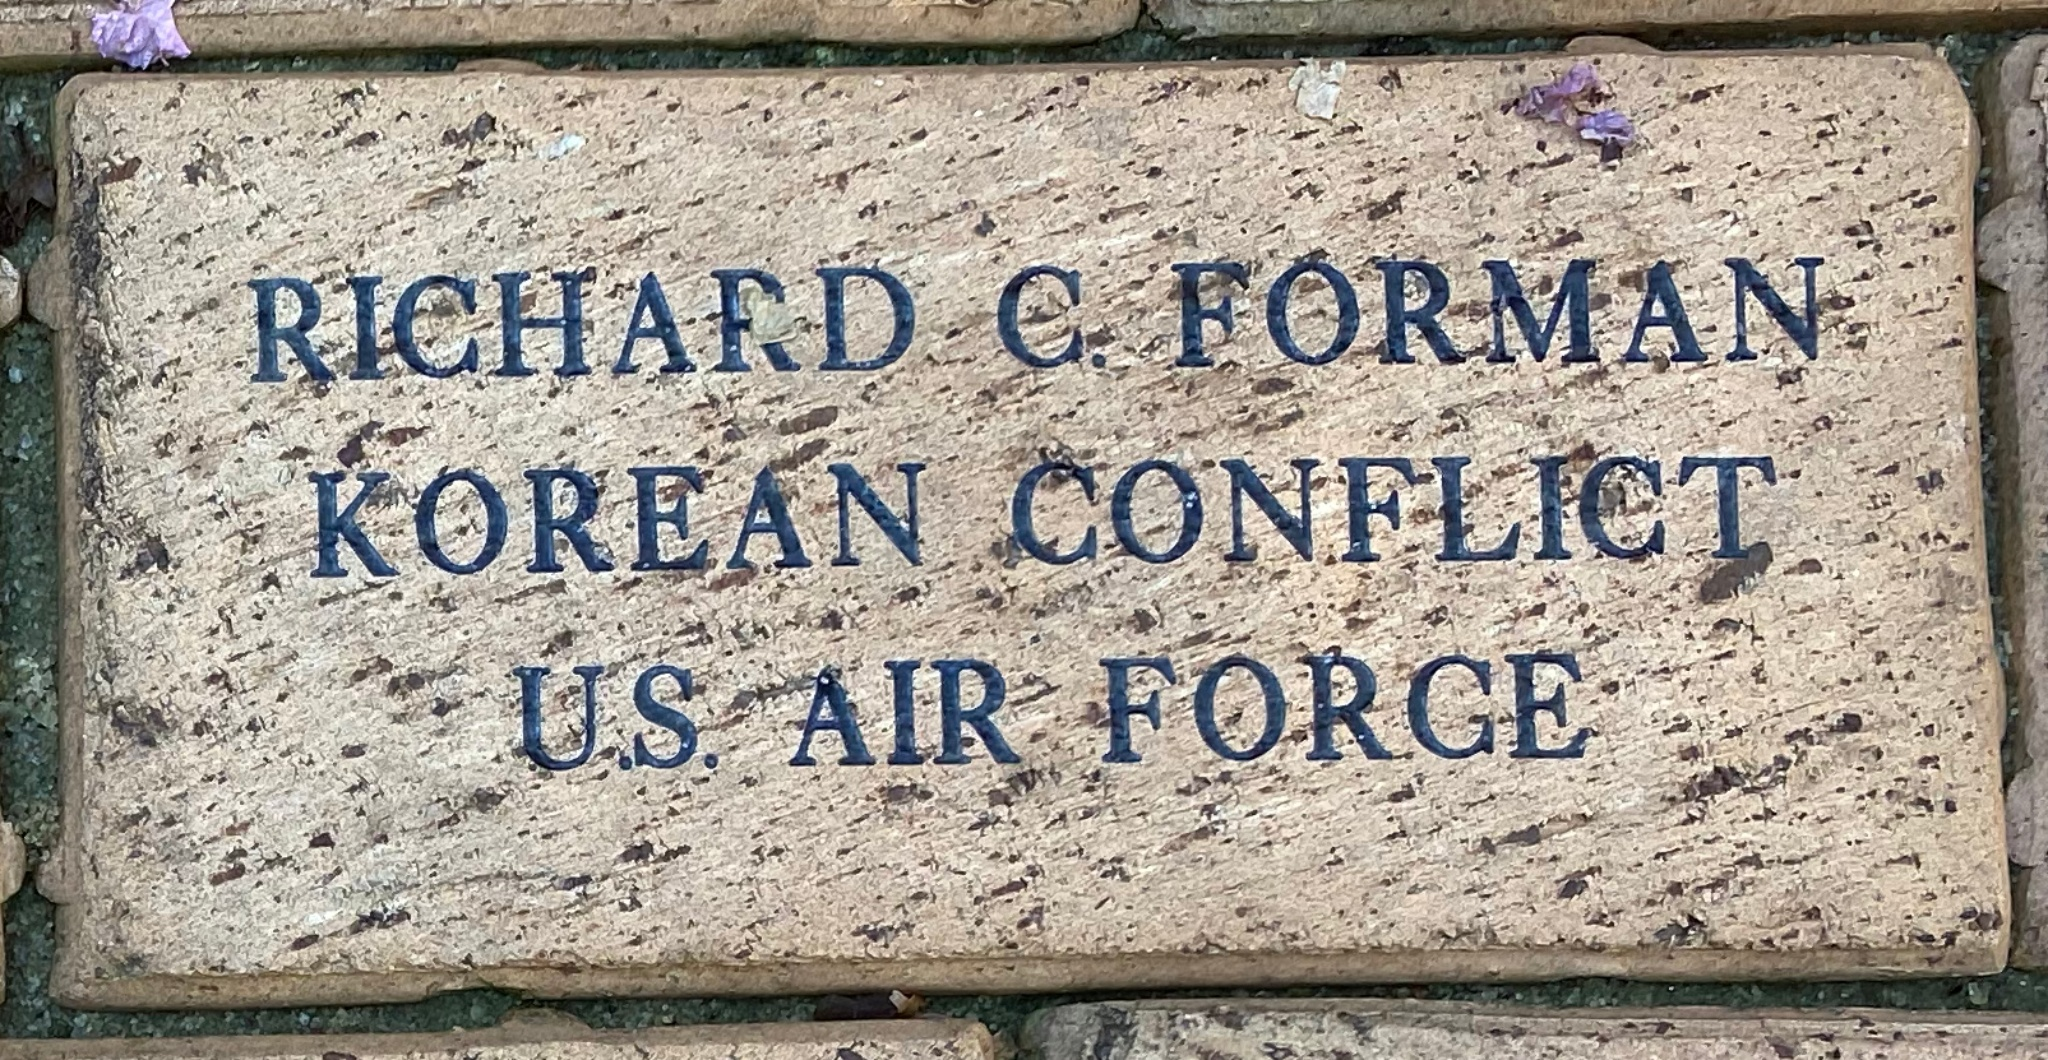 RICHARD C. FORMAN KOREAN CONFLICT US AIR FORCE